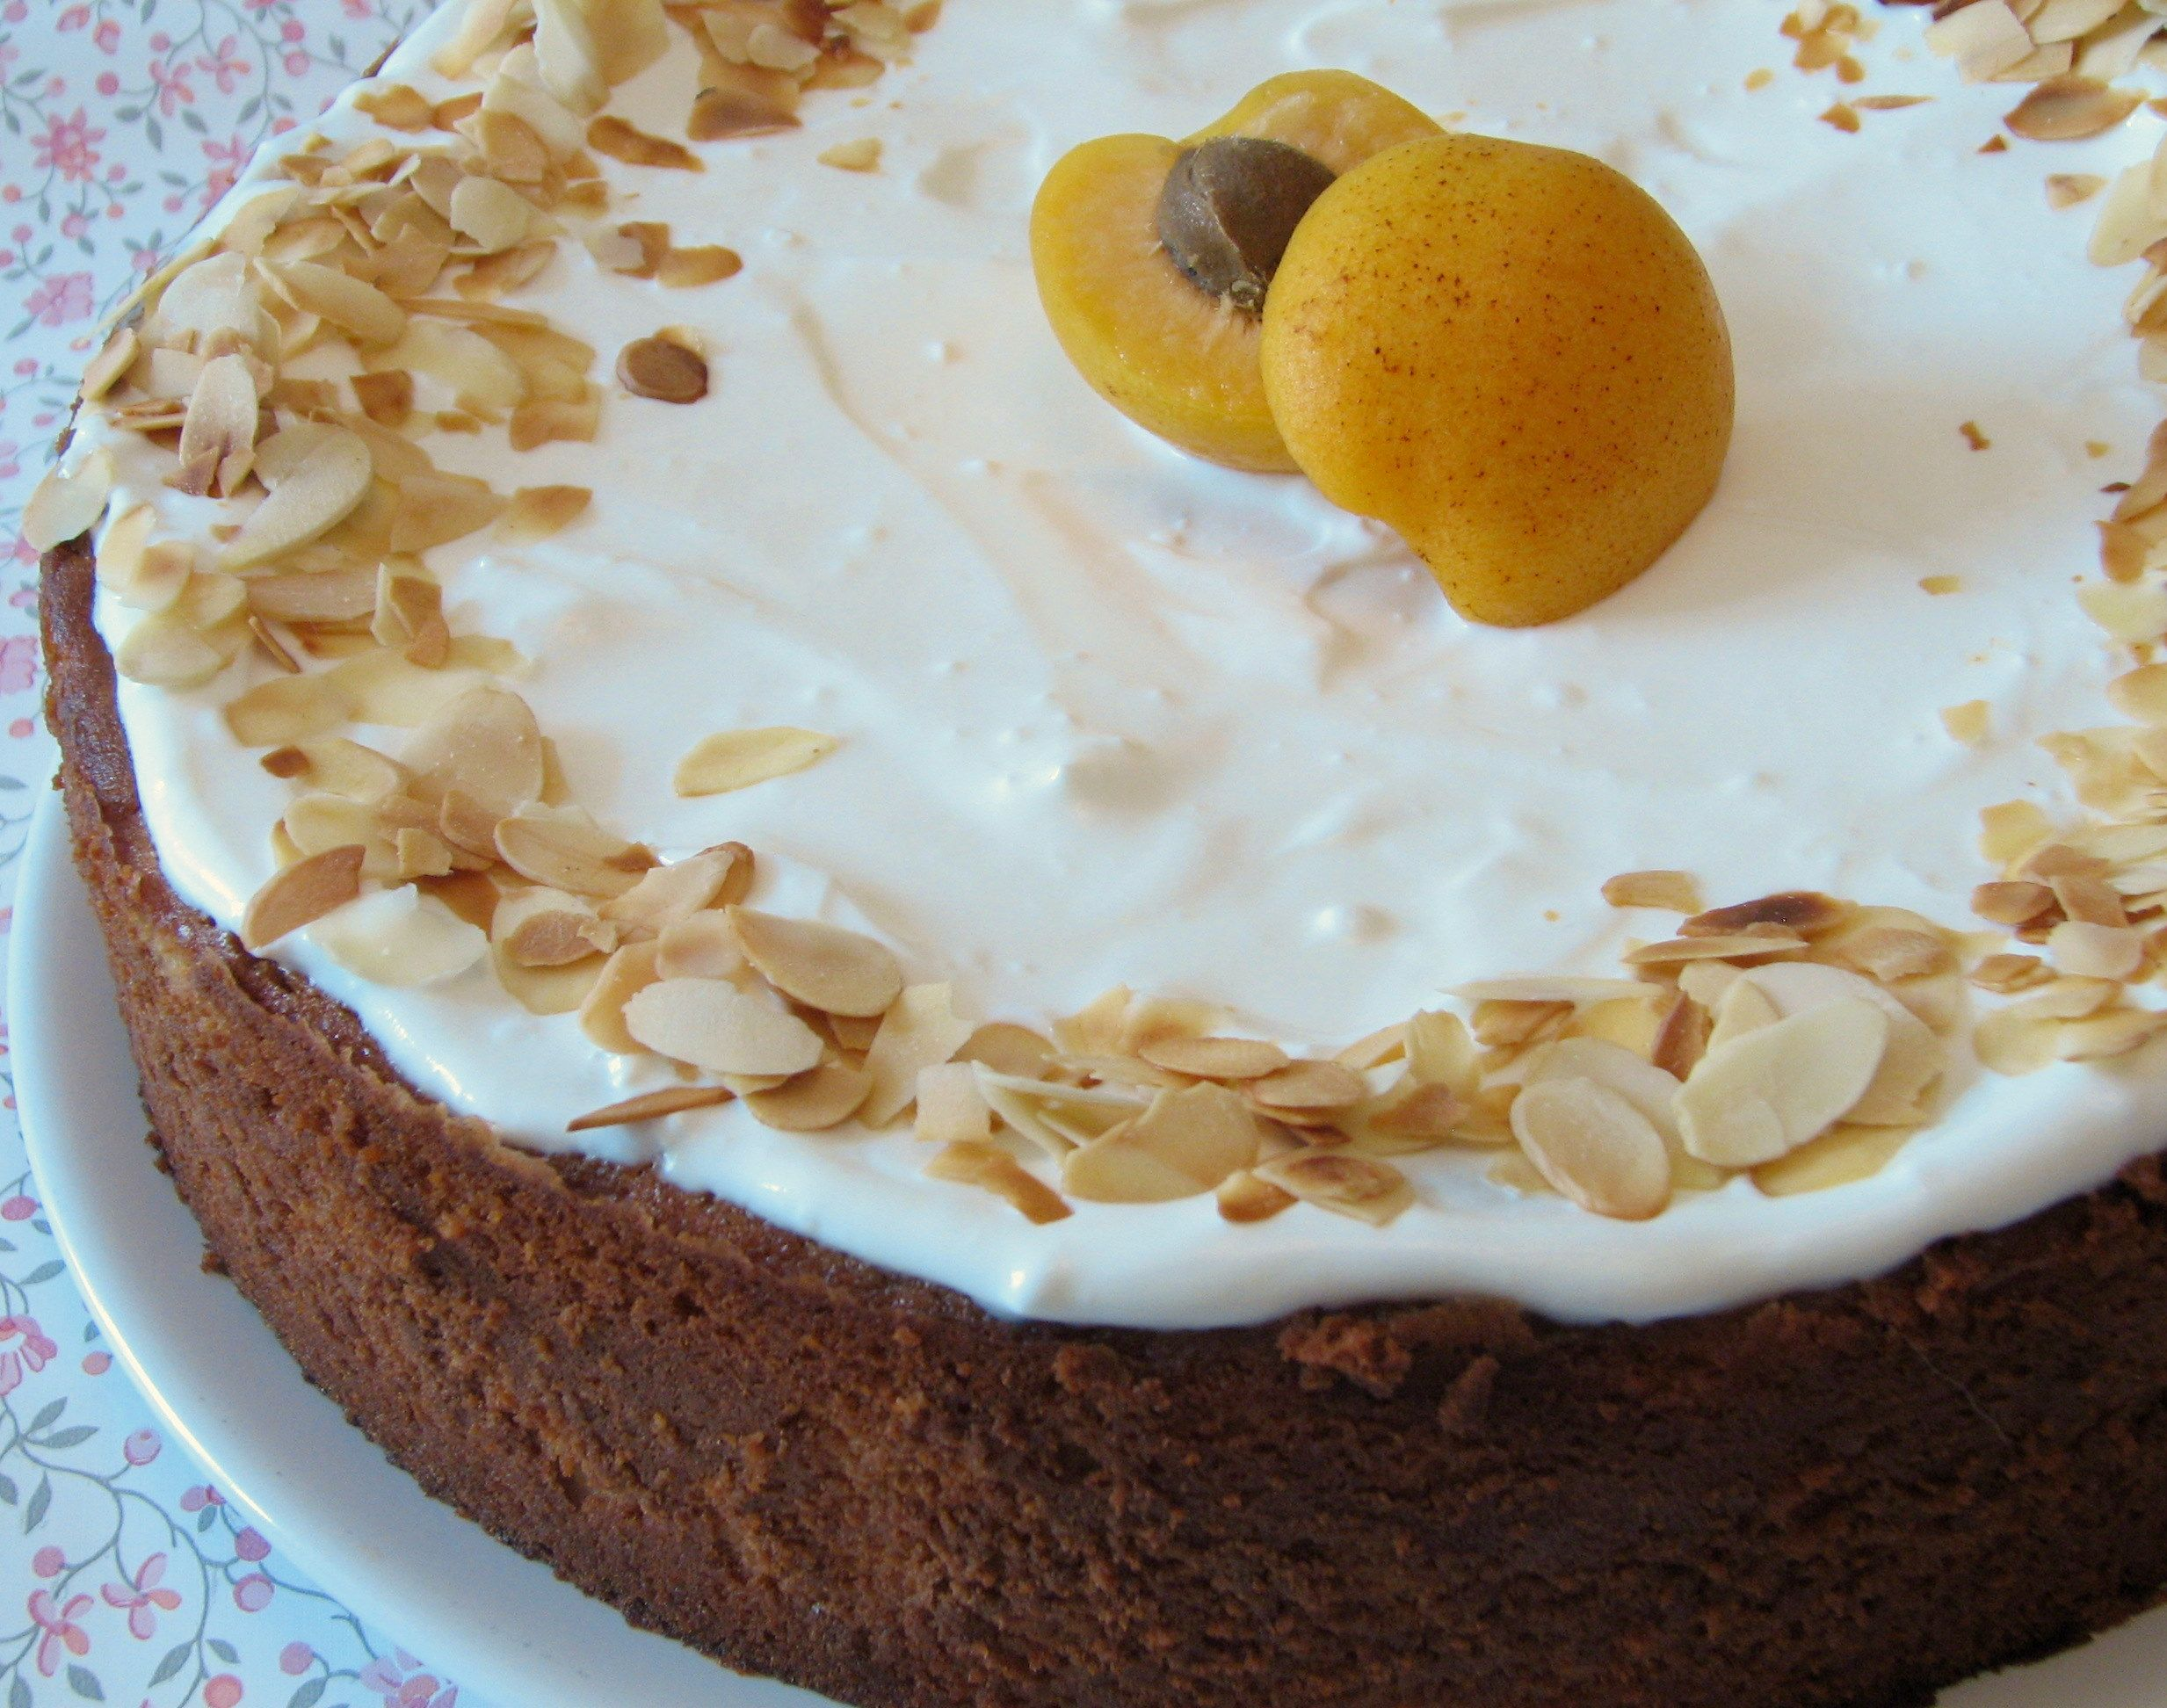 Apricot Ricotta Cake with Almonds